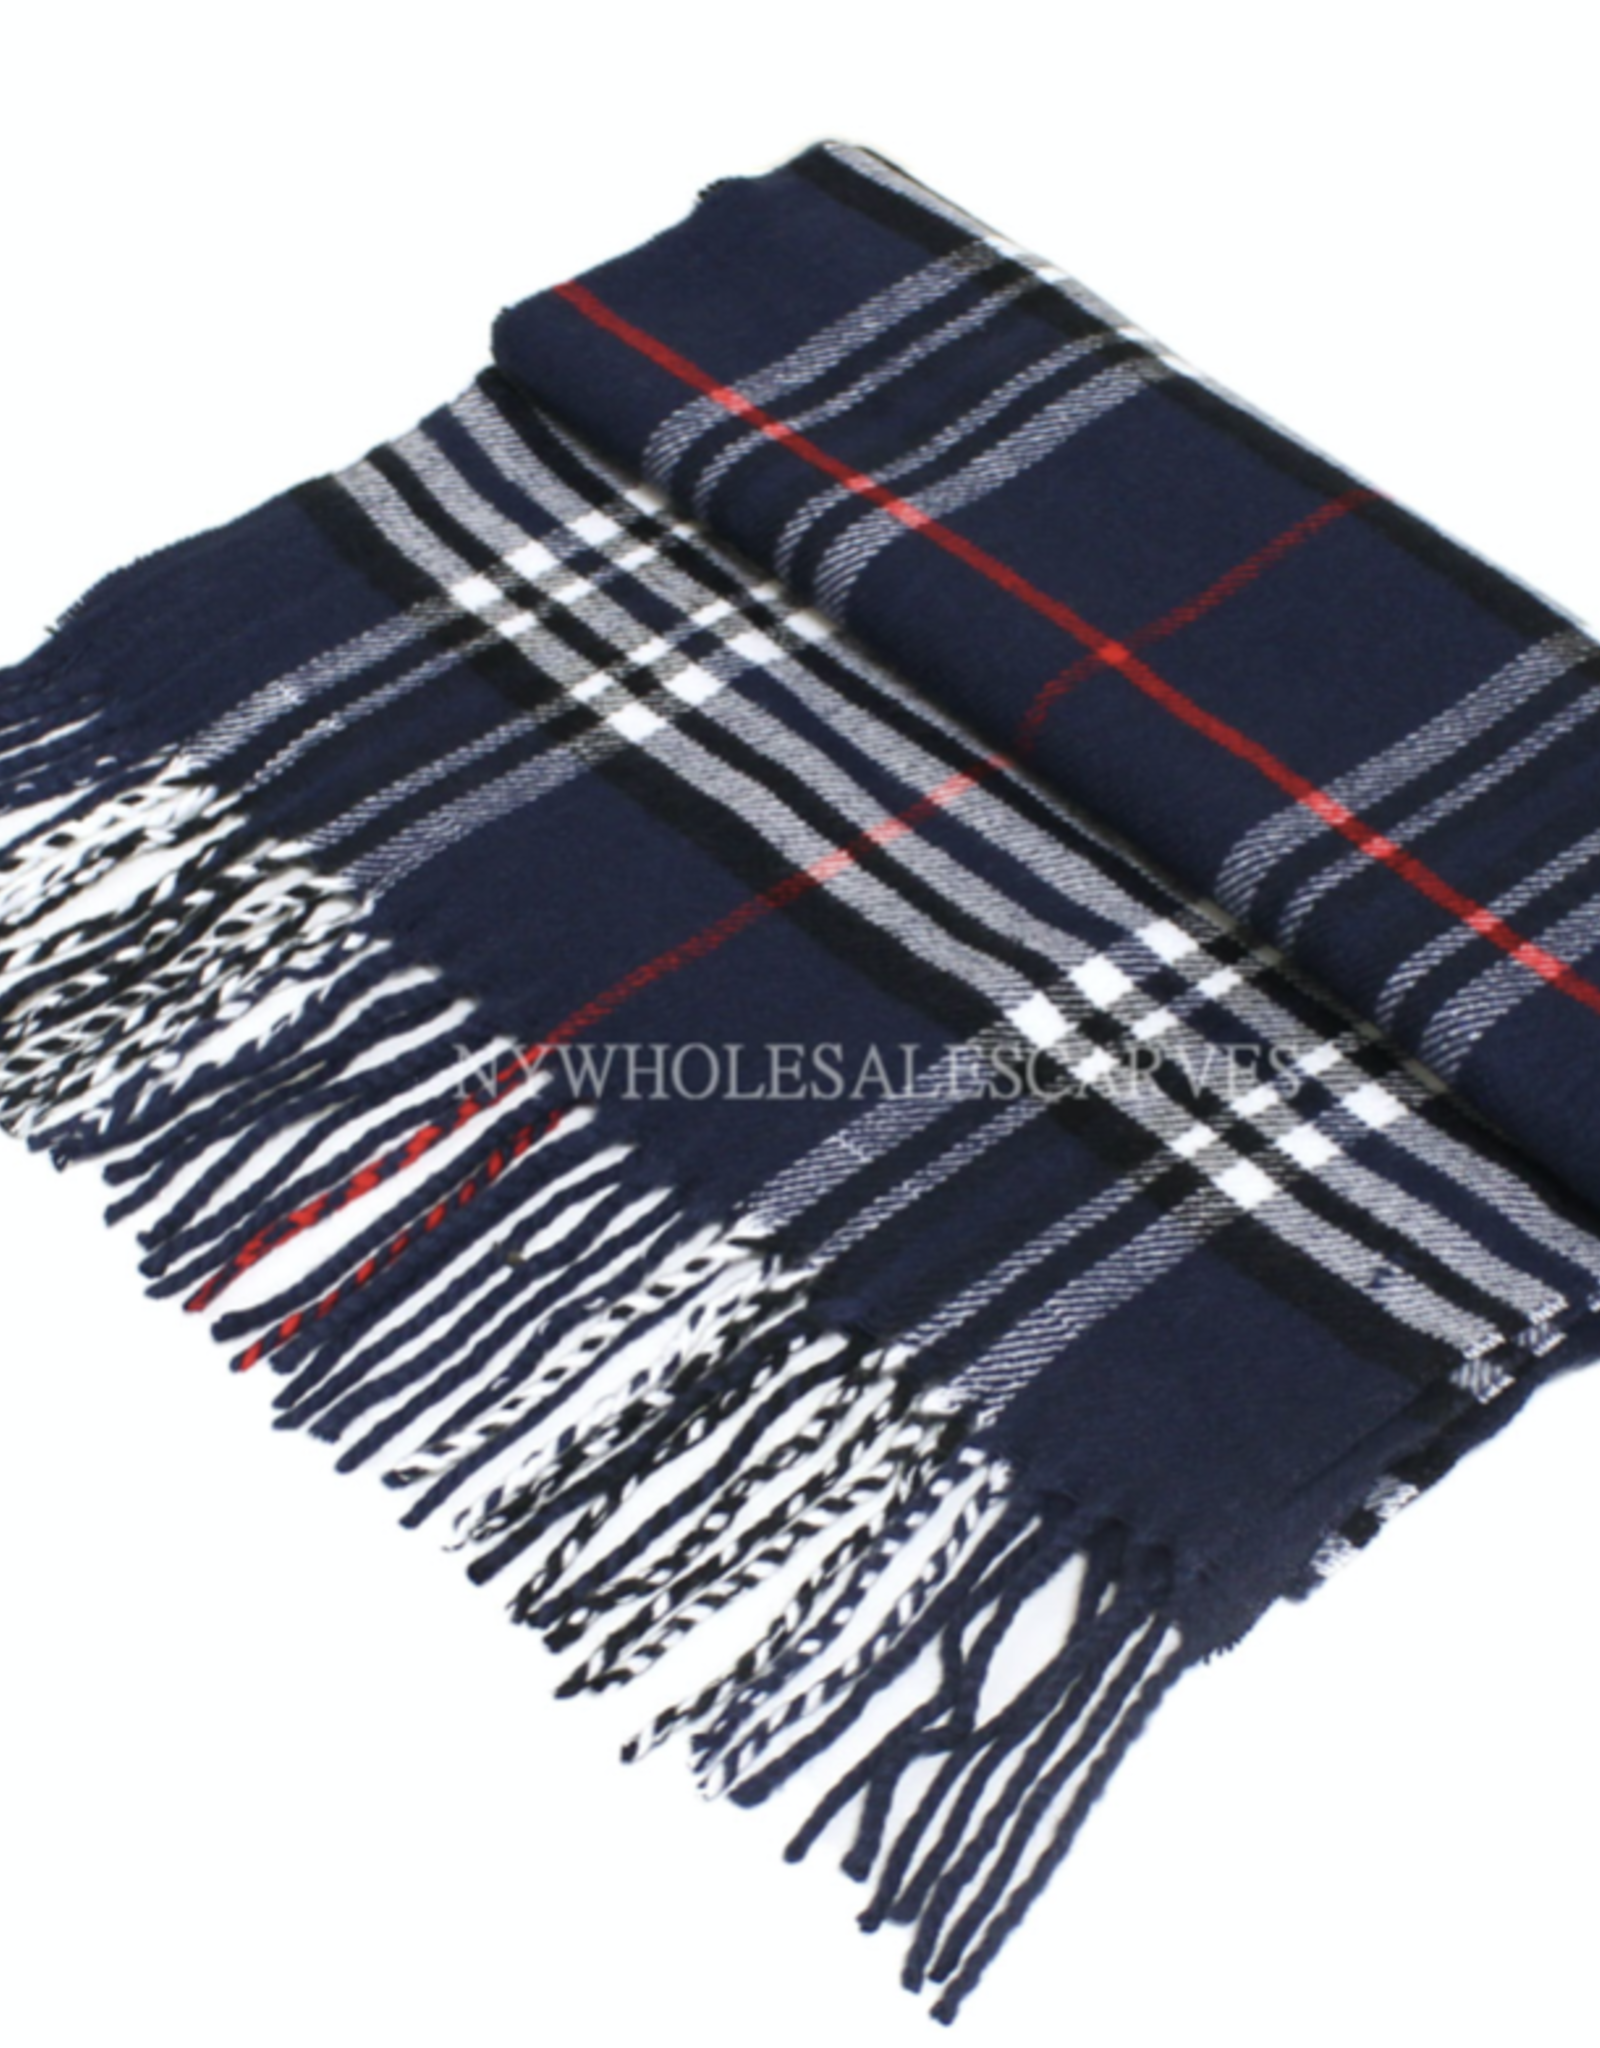 FIRST NY WHOLESALE Cashmere Feel Scarf - Navy/Red/White